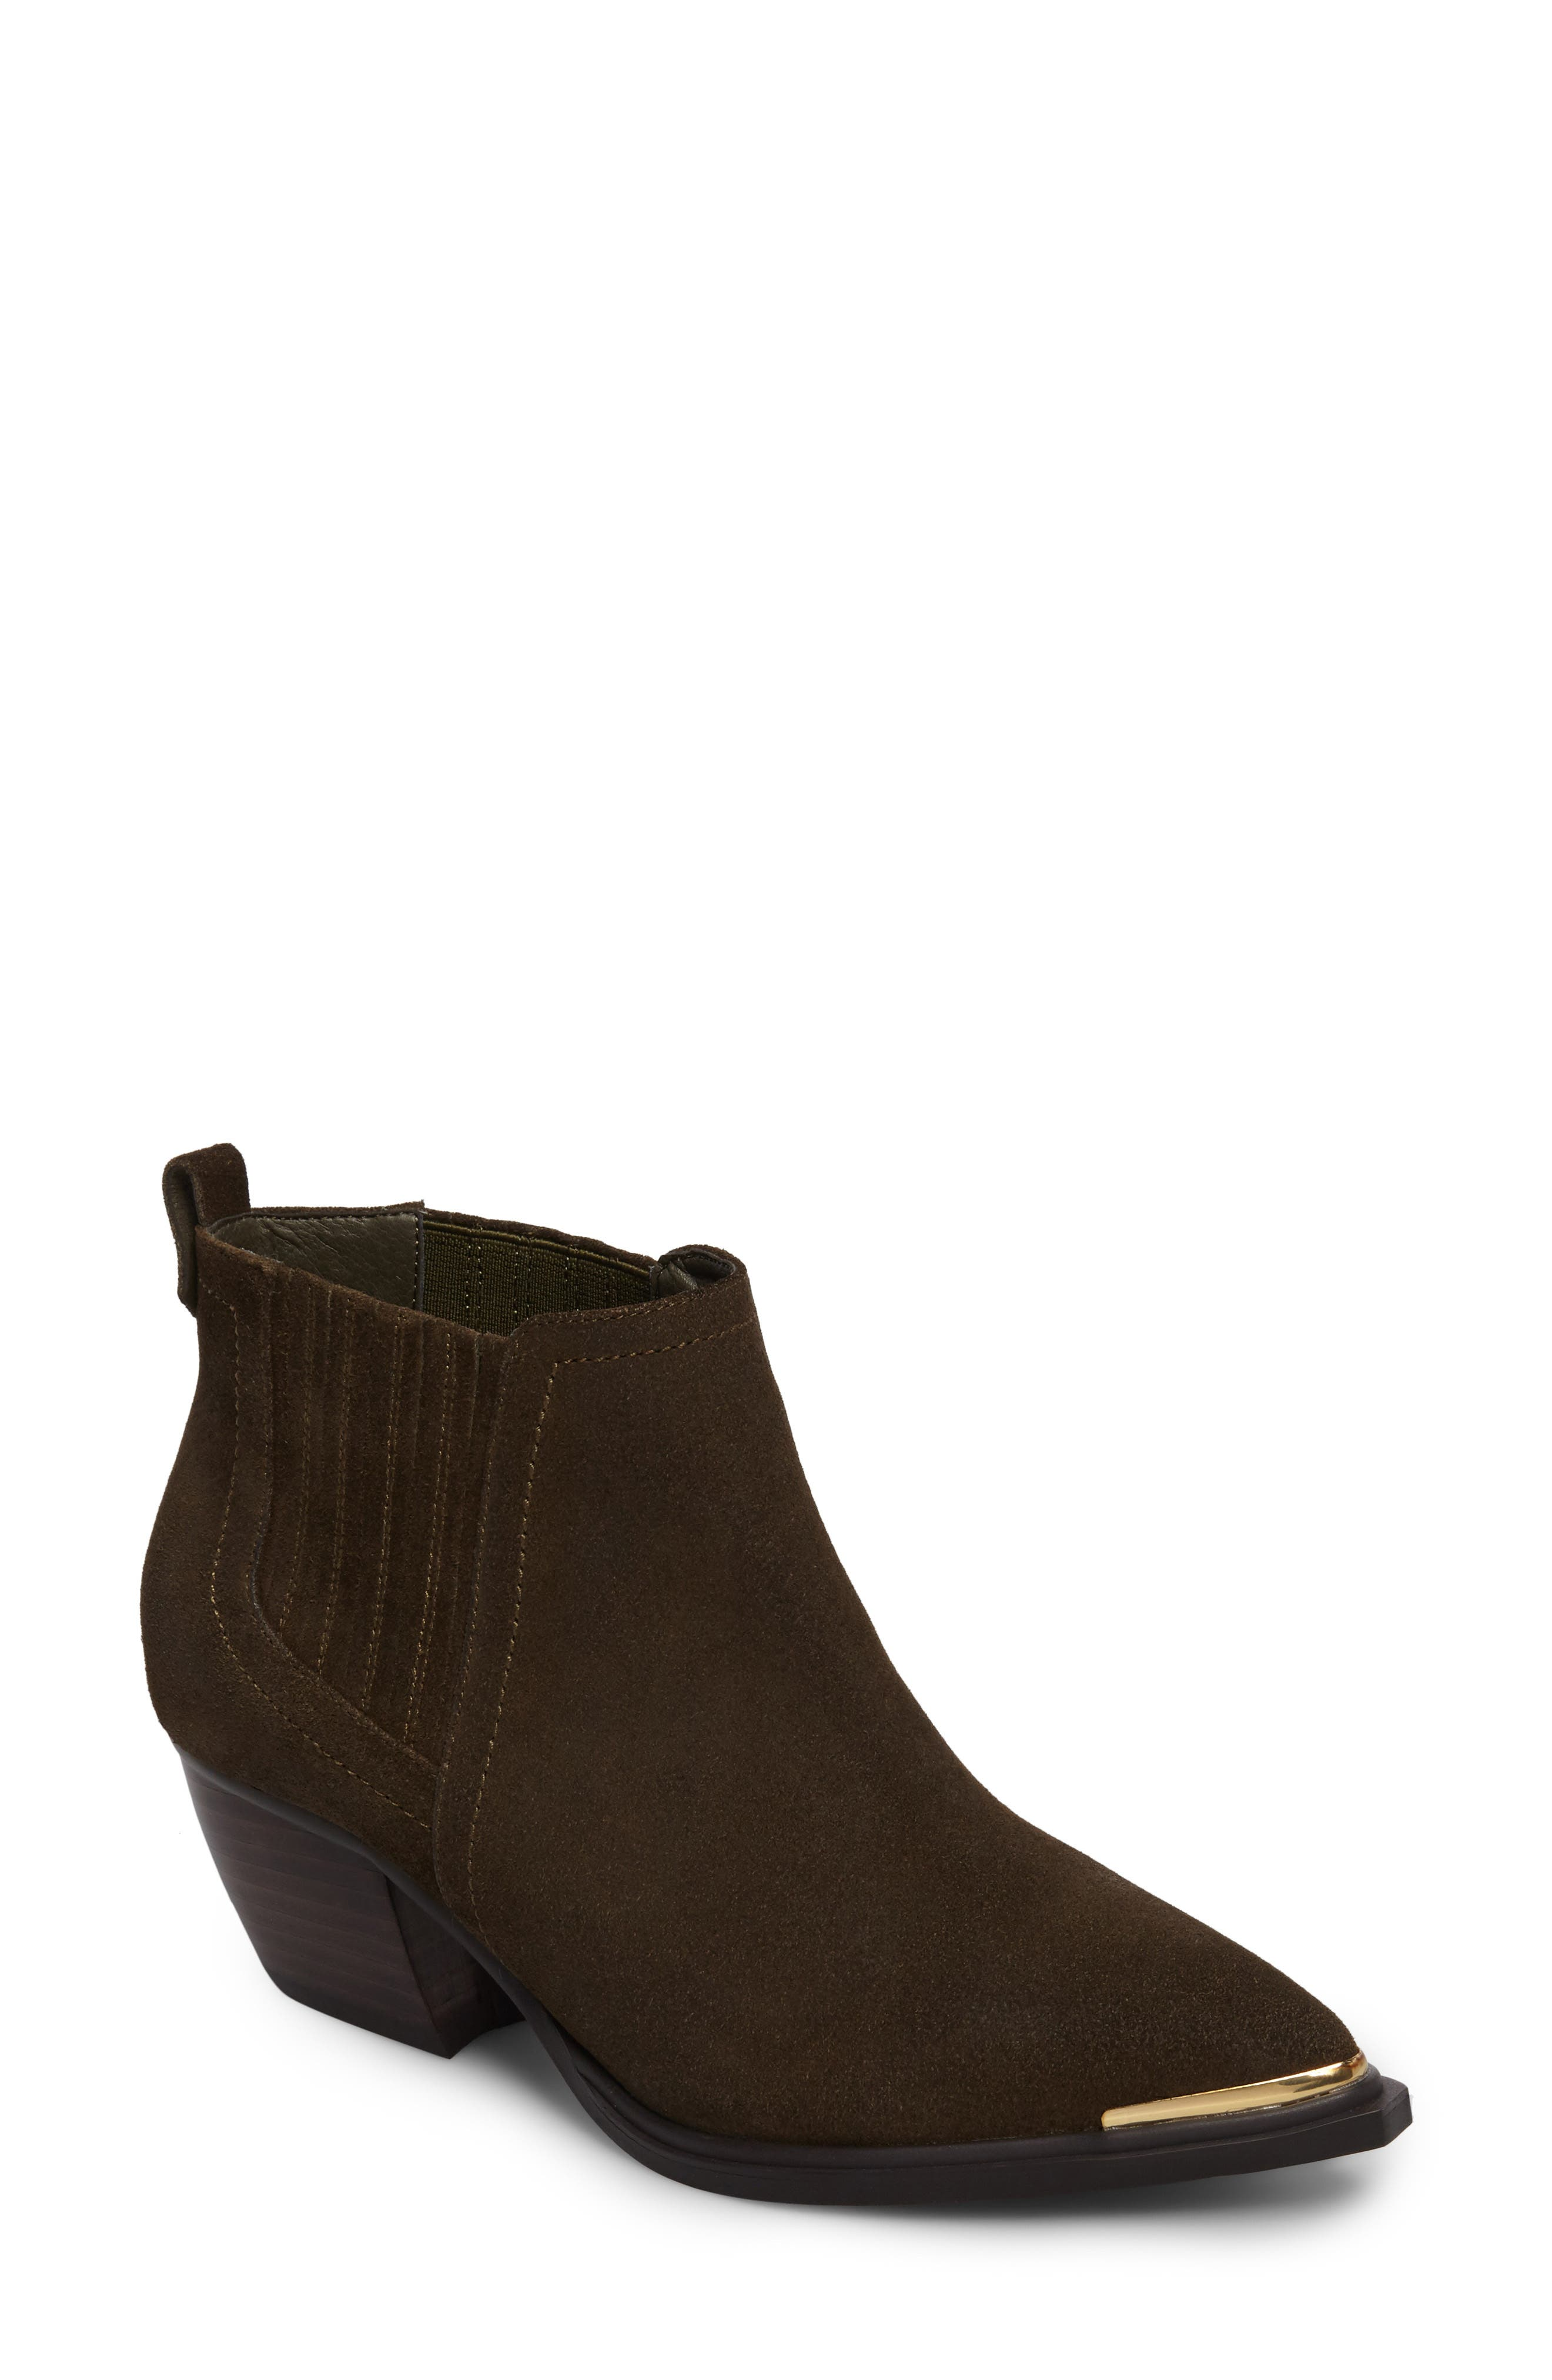 Cardinal Pointy Toe Bootie,                             Main thumbnail 1, color,                             Khaki Suede